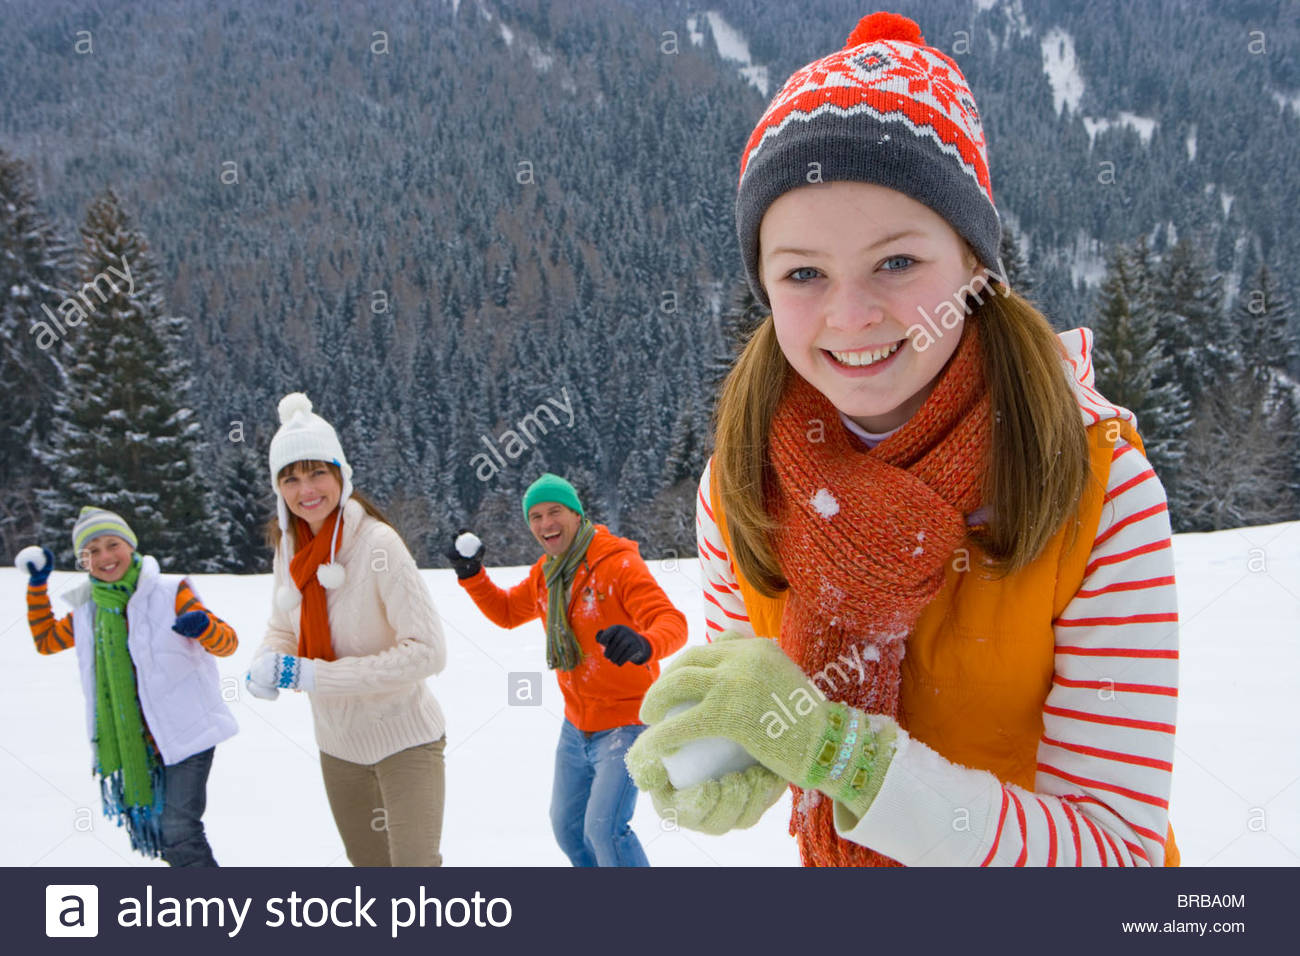 Smiling family having snowball fight in snow - Stock Image